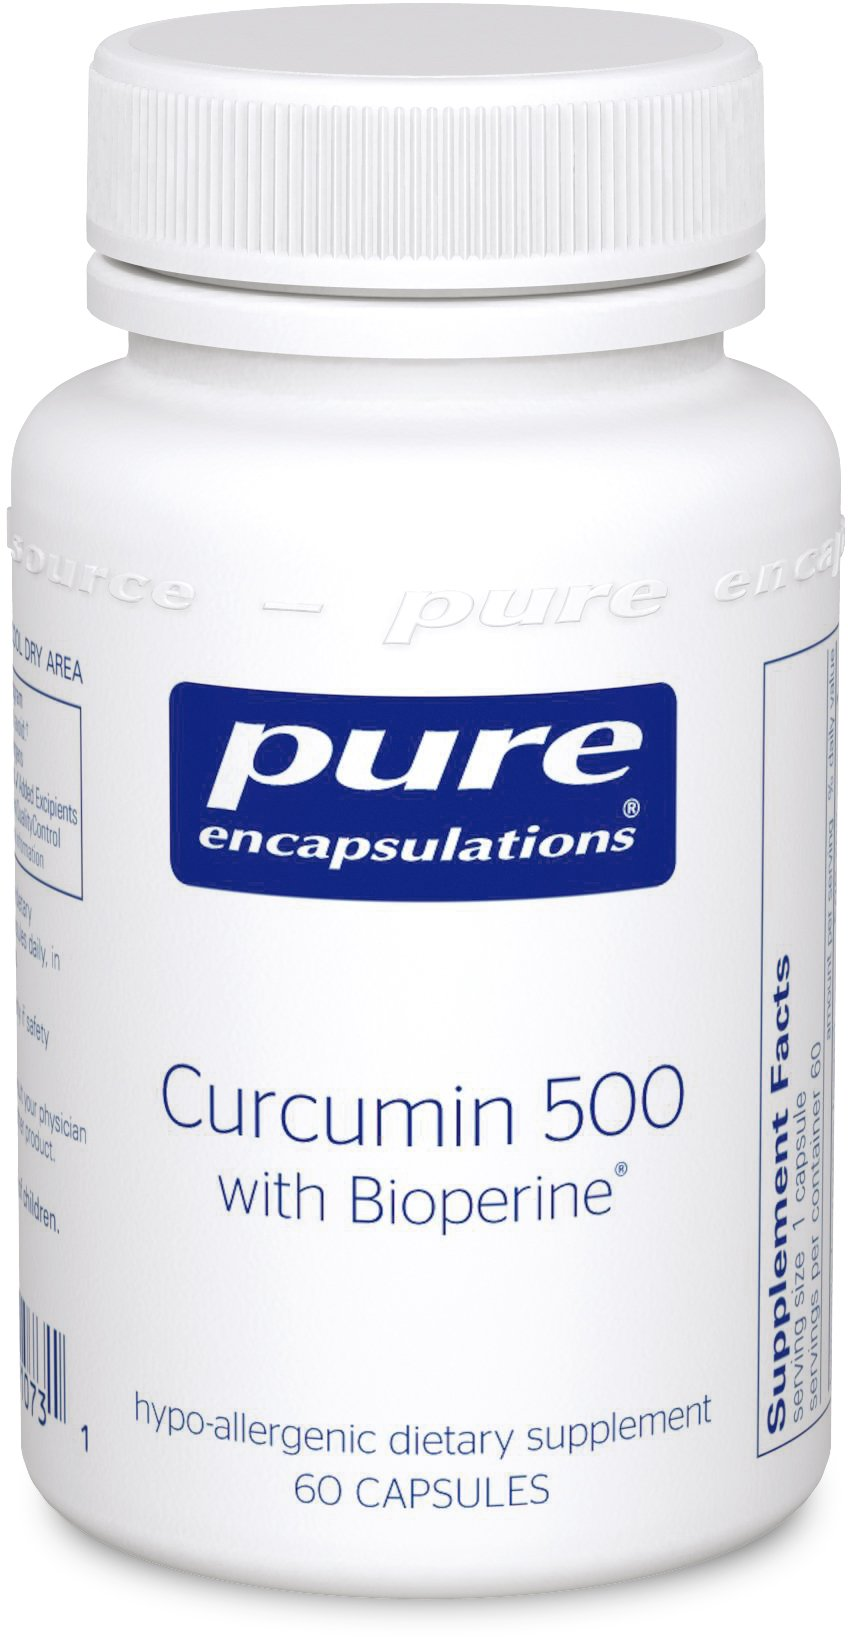 Pure Encapsulations - Curcumin 500 with Bioperine - Antioxidants for the Maintenance of Good Health - 60 Capsules